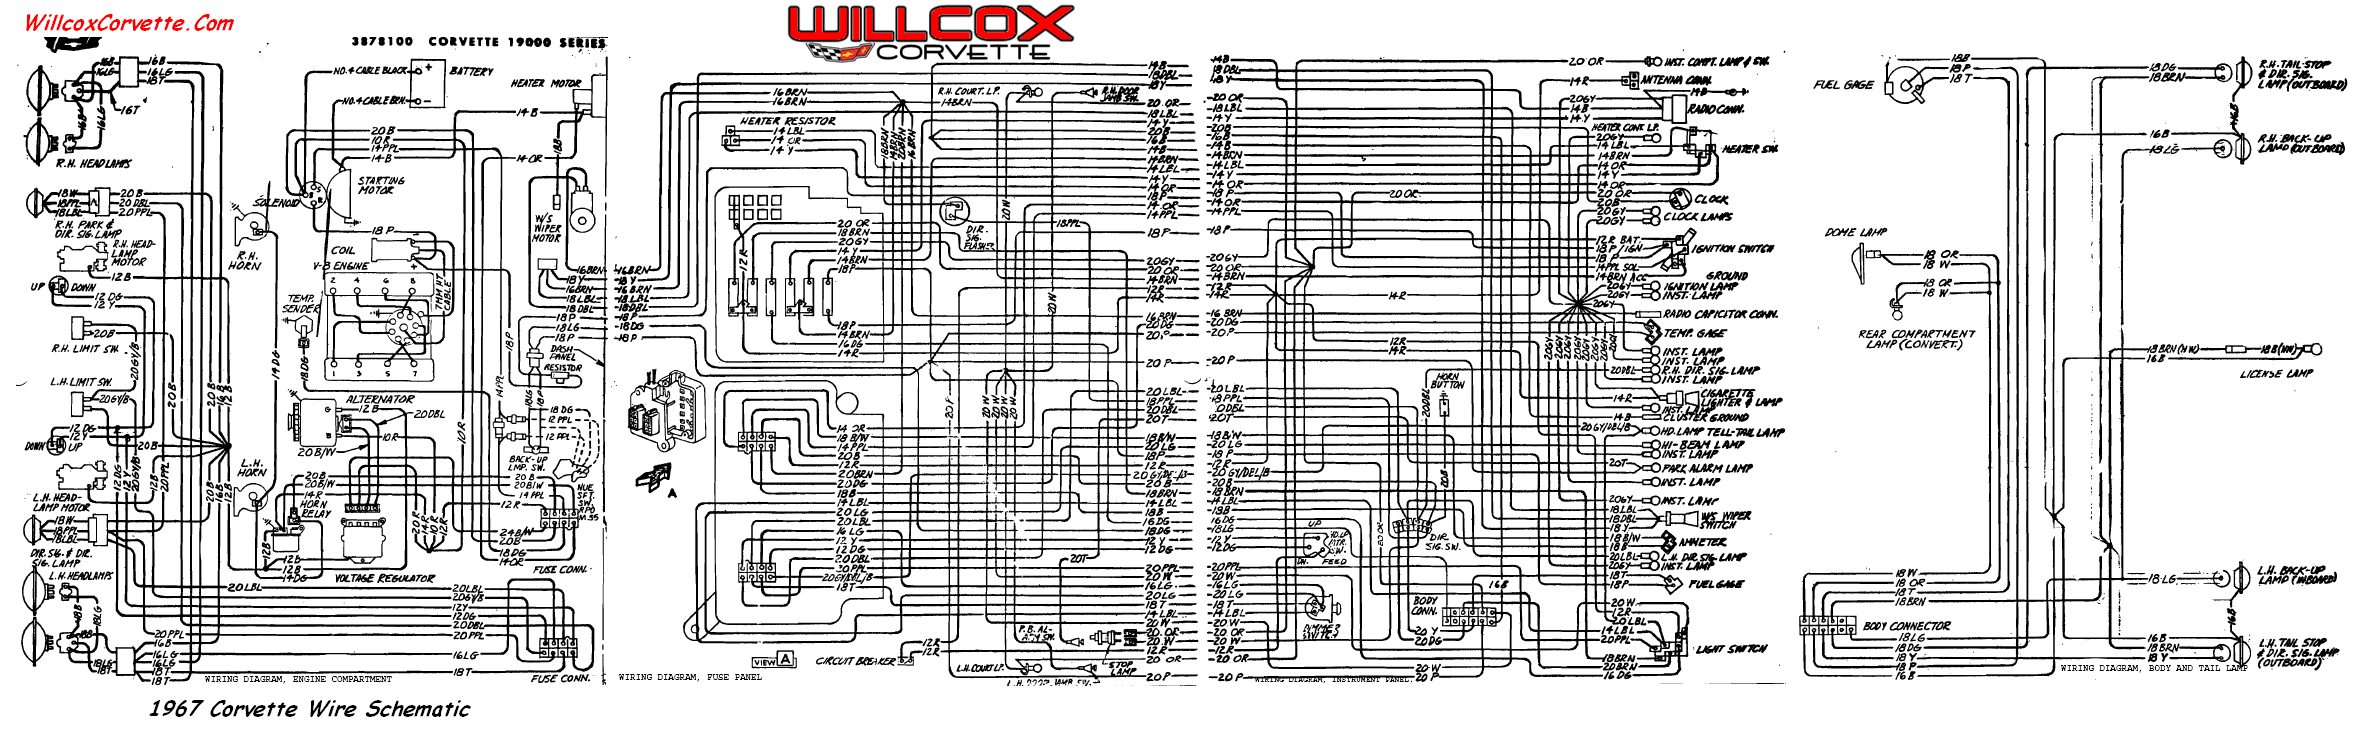 67 wire schematic for tracing wires 1967 corvette wiring diagram (tracer schematic) willcox corvette 1980 corvette wiring diagram at mifinder.co